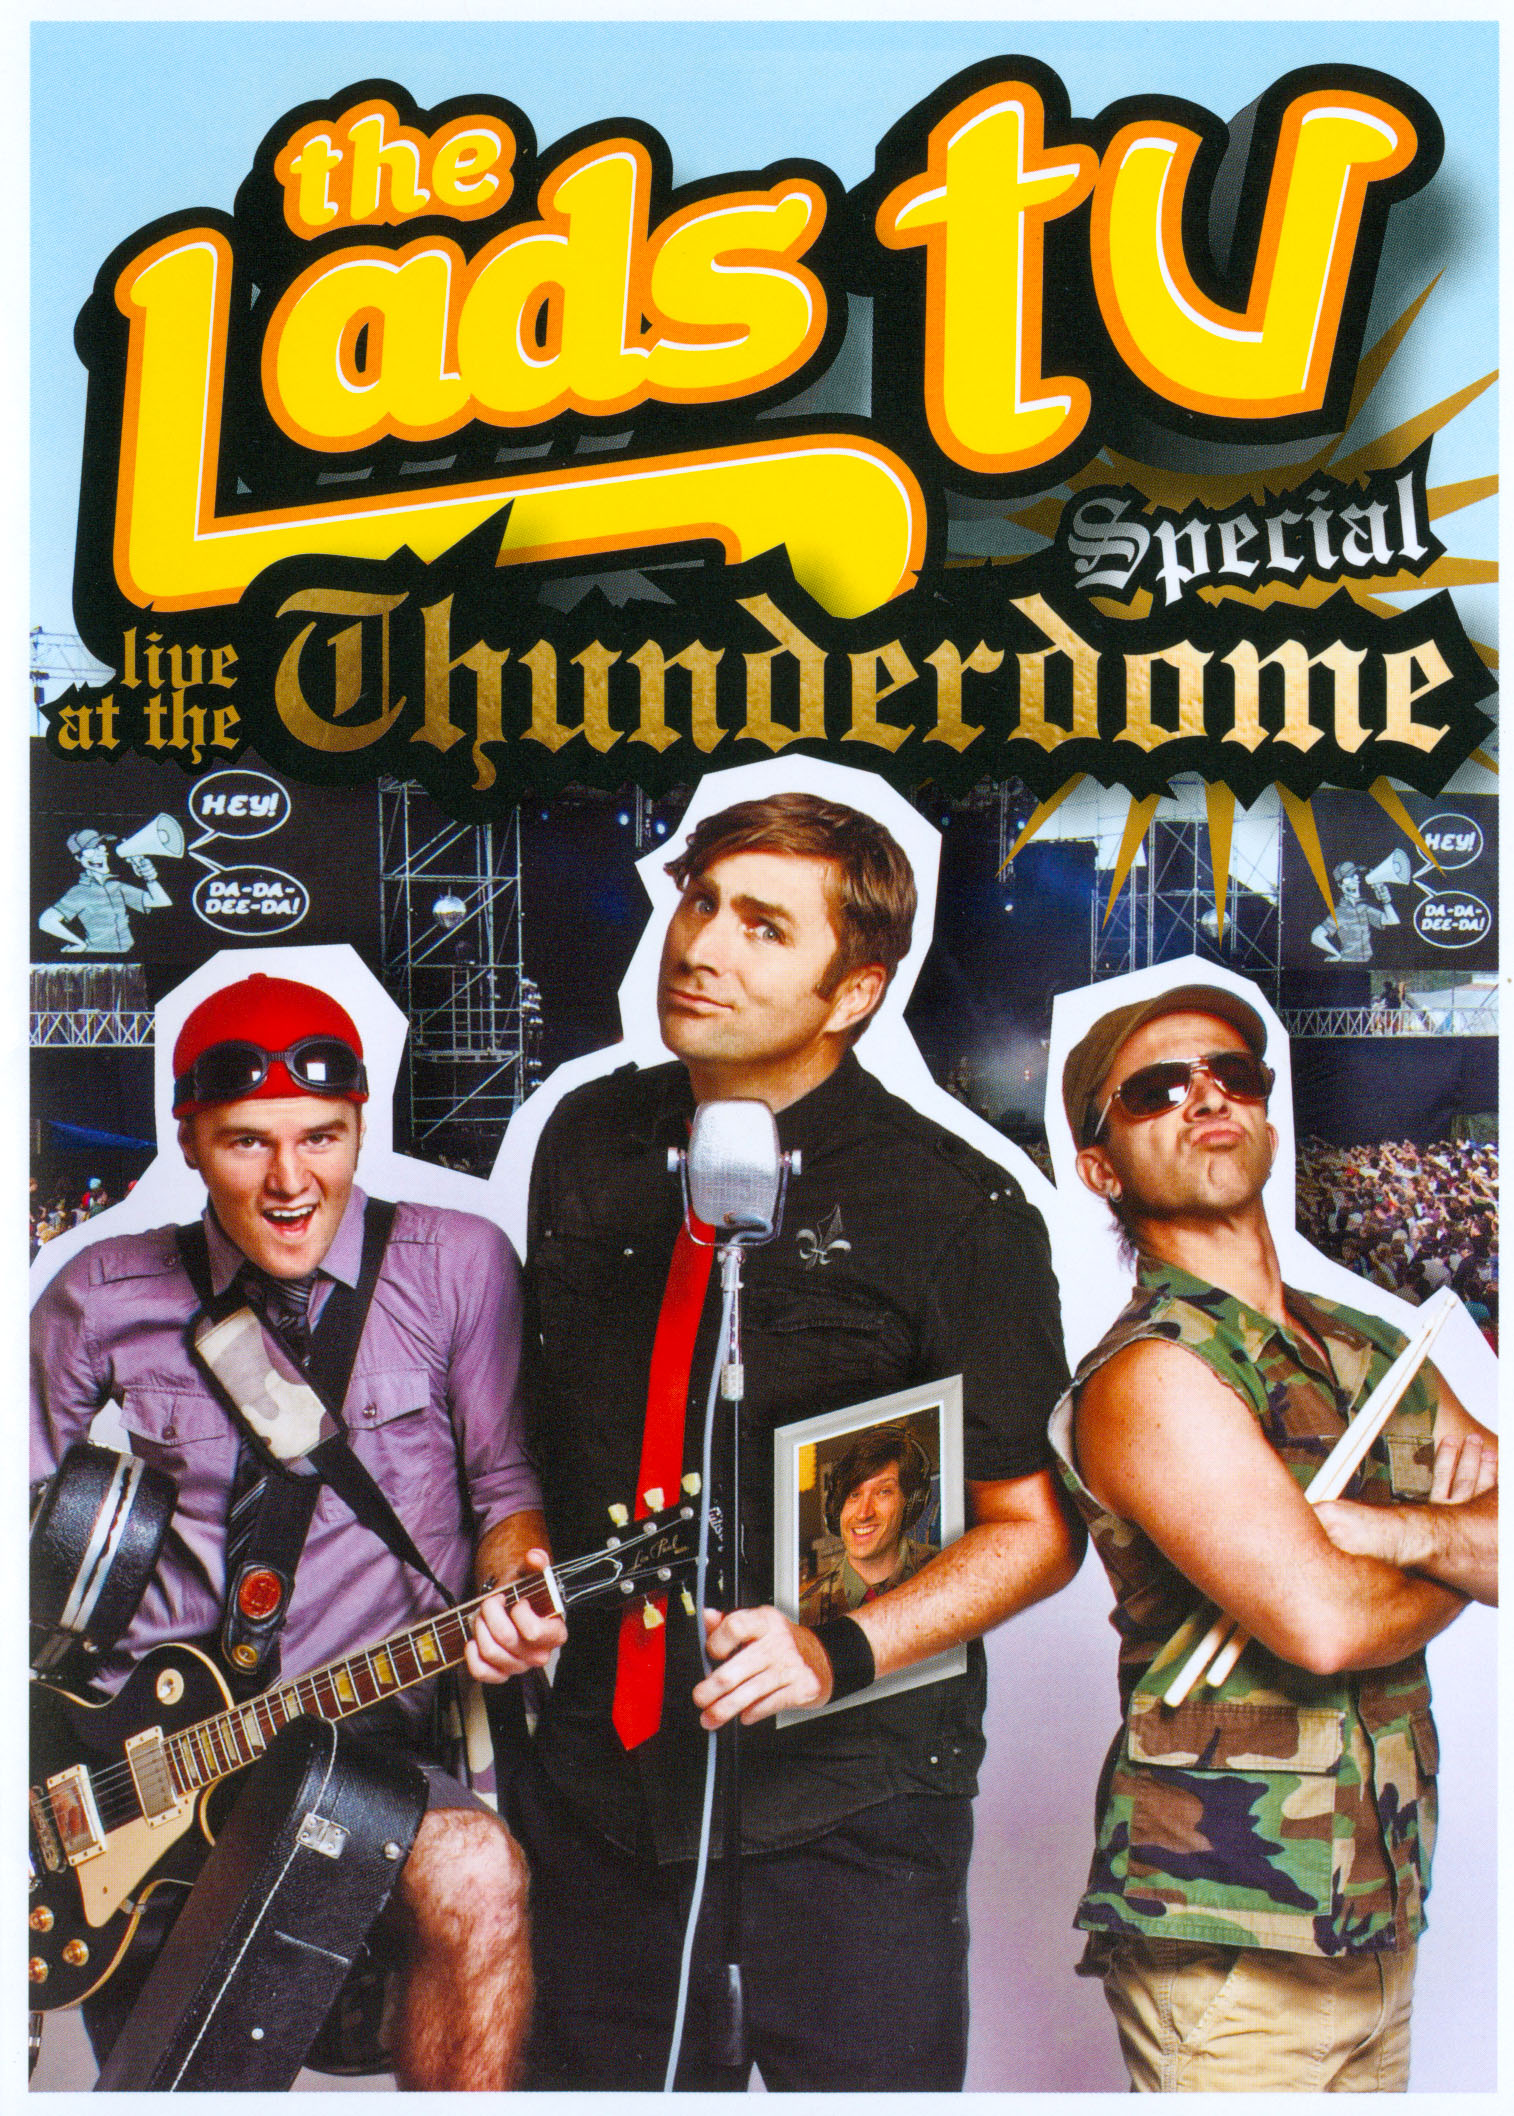 The Lads TV: Live at the Thunderdome